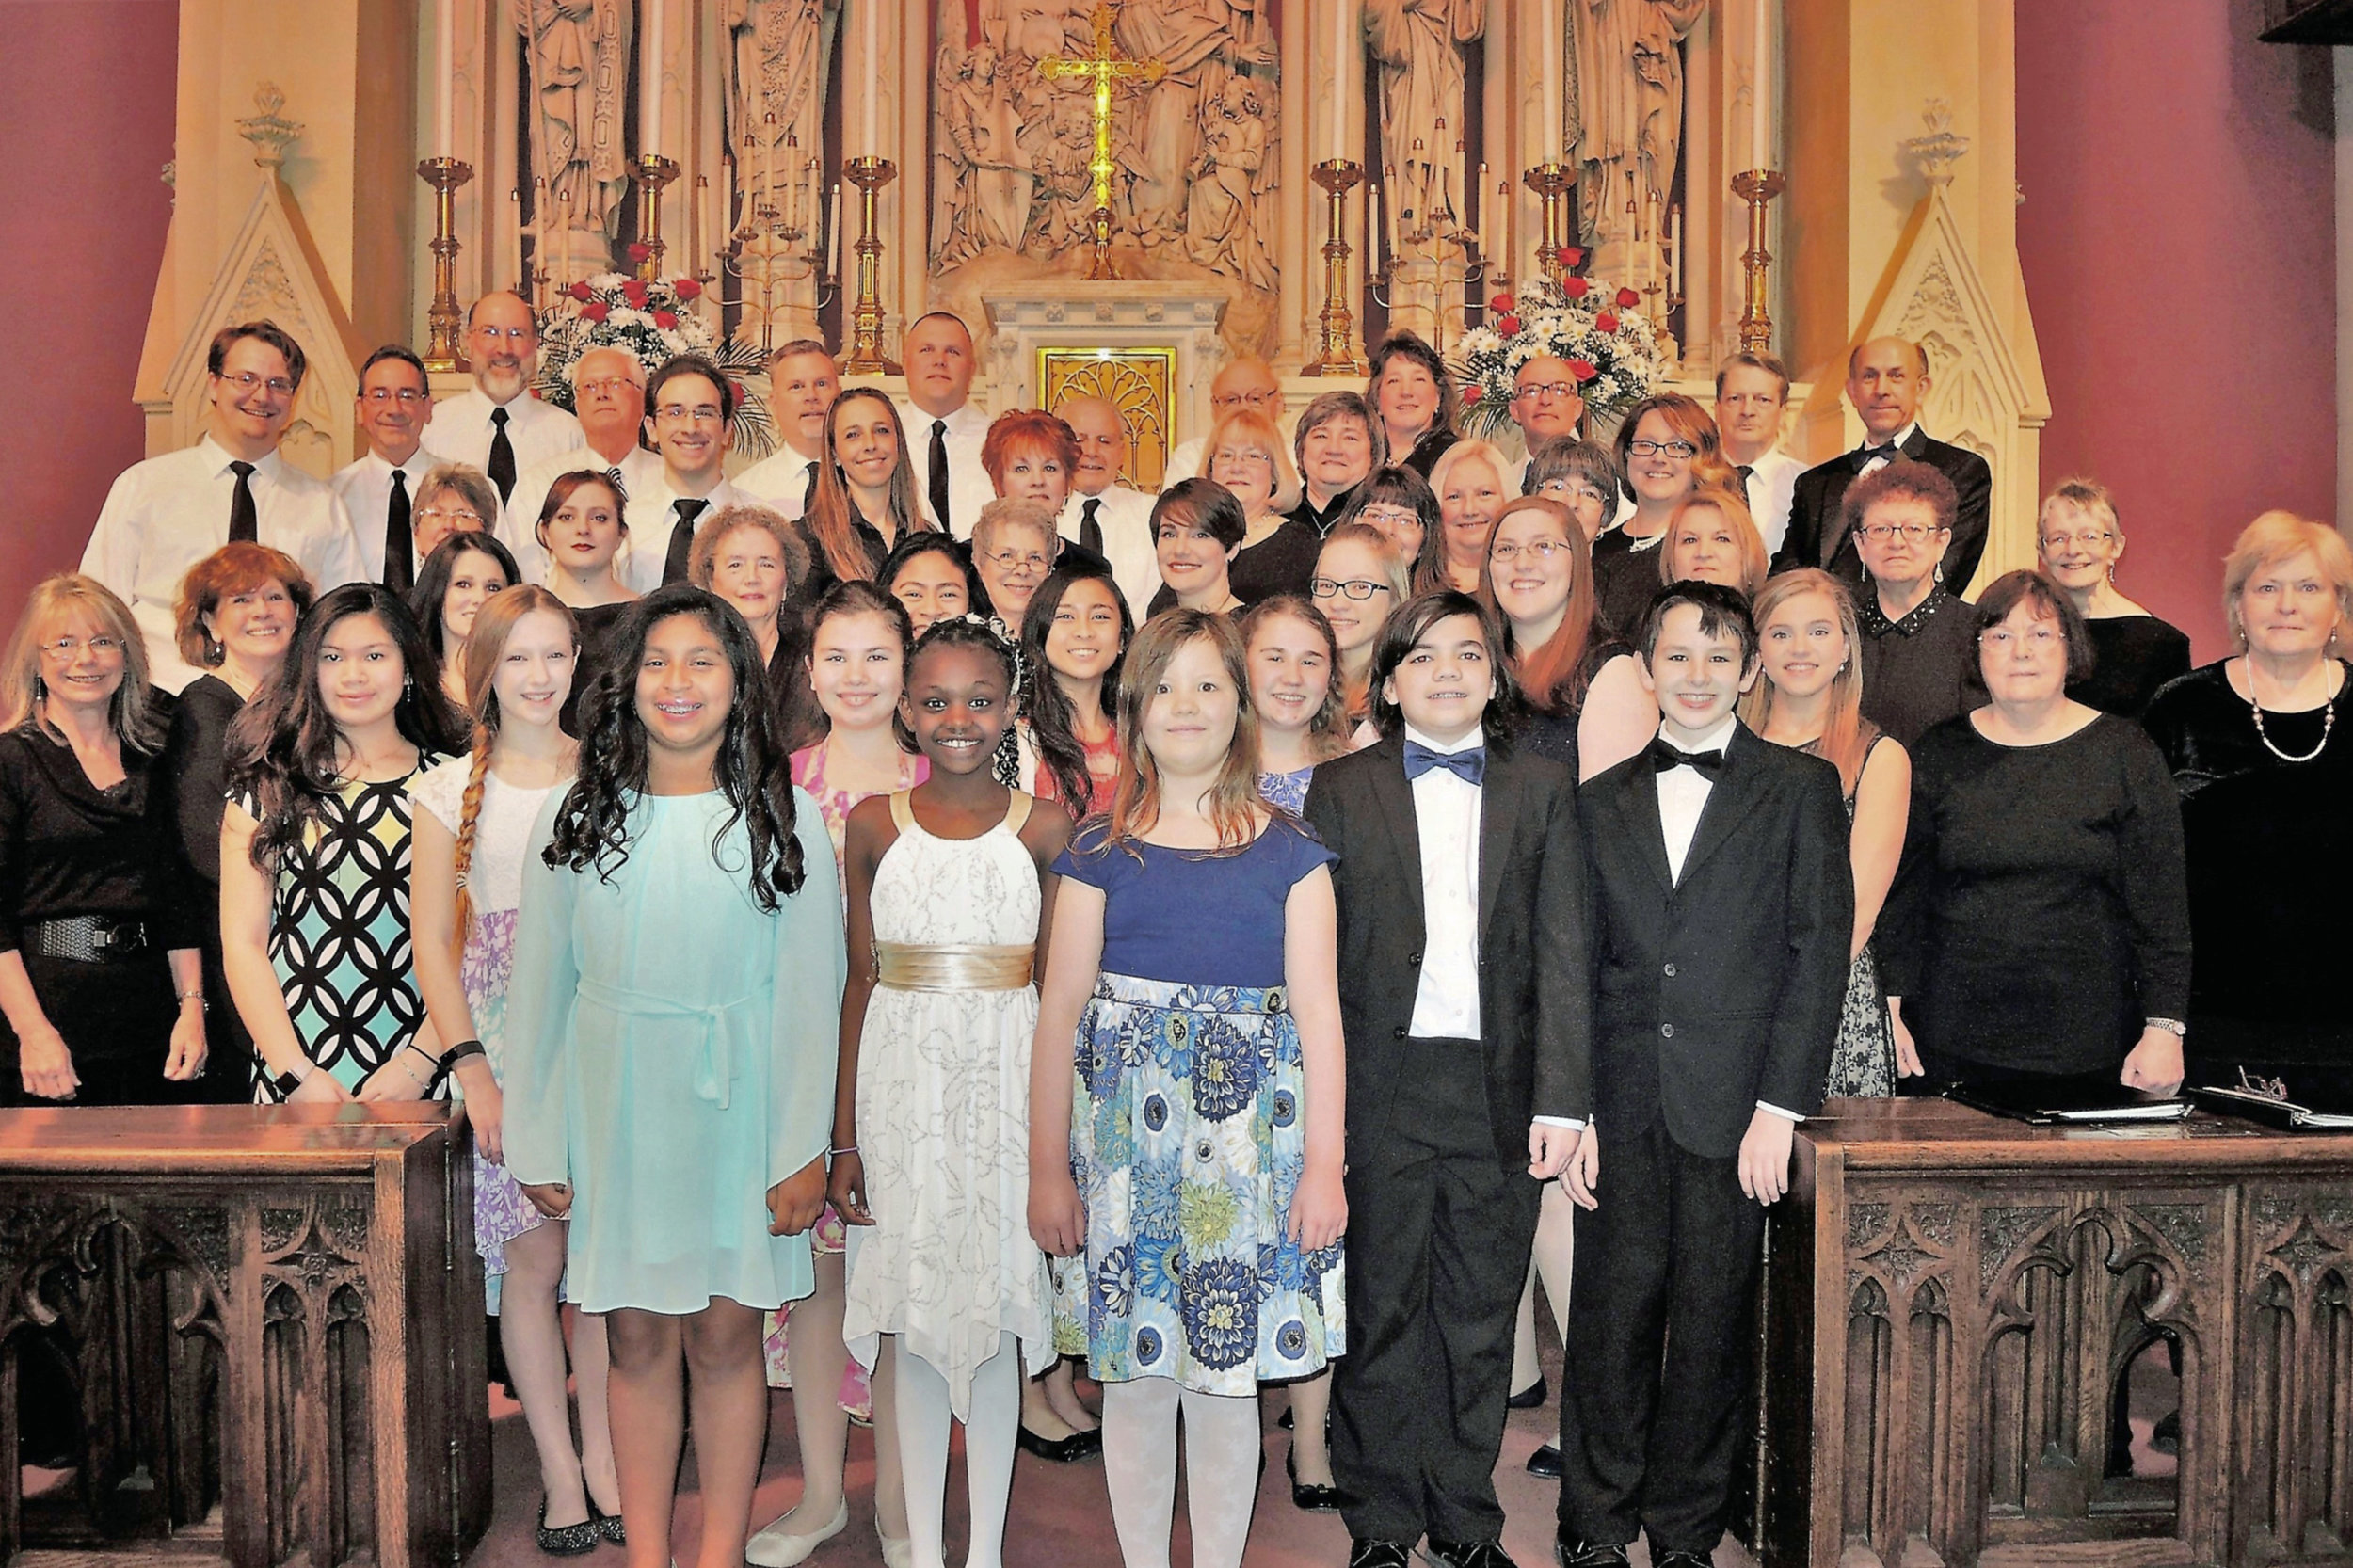 Along with an orchestra of 40 players and 4 additional soloists, this was the choir that presented   Cantata Memoria: For the Children of Aberfan   in its third ever performance, 26 February, 2017.